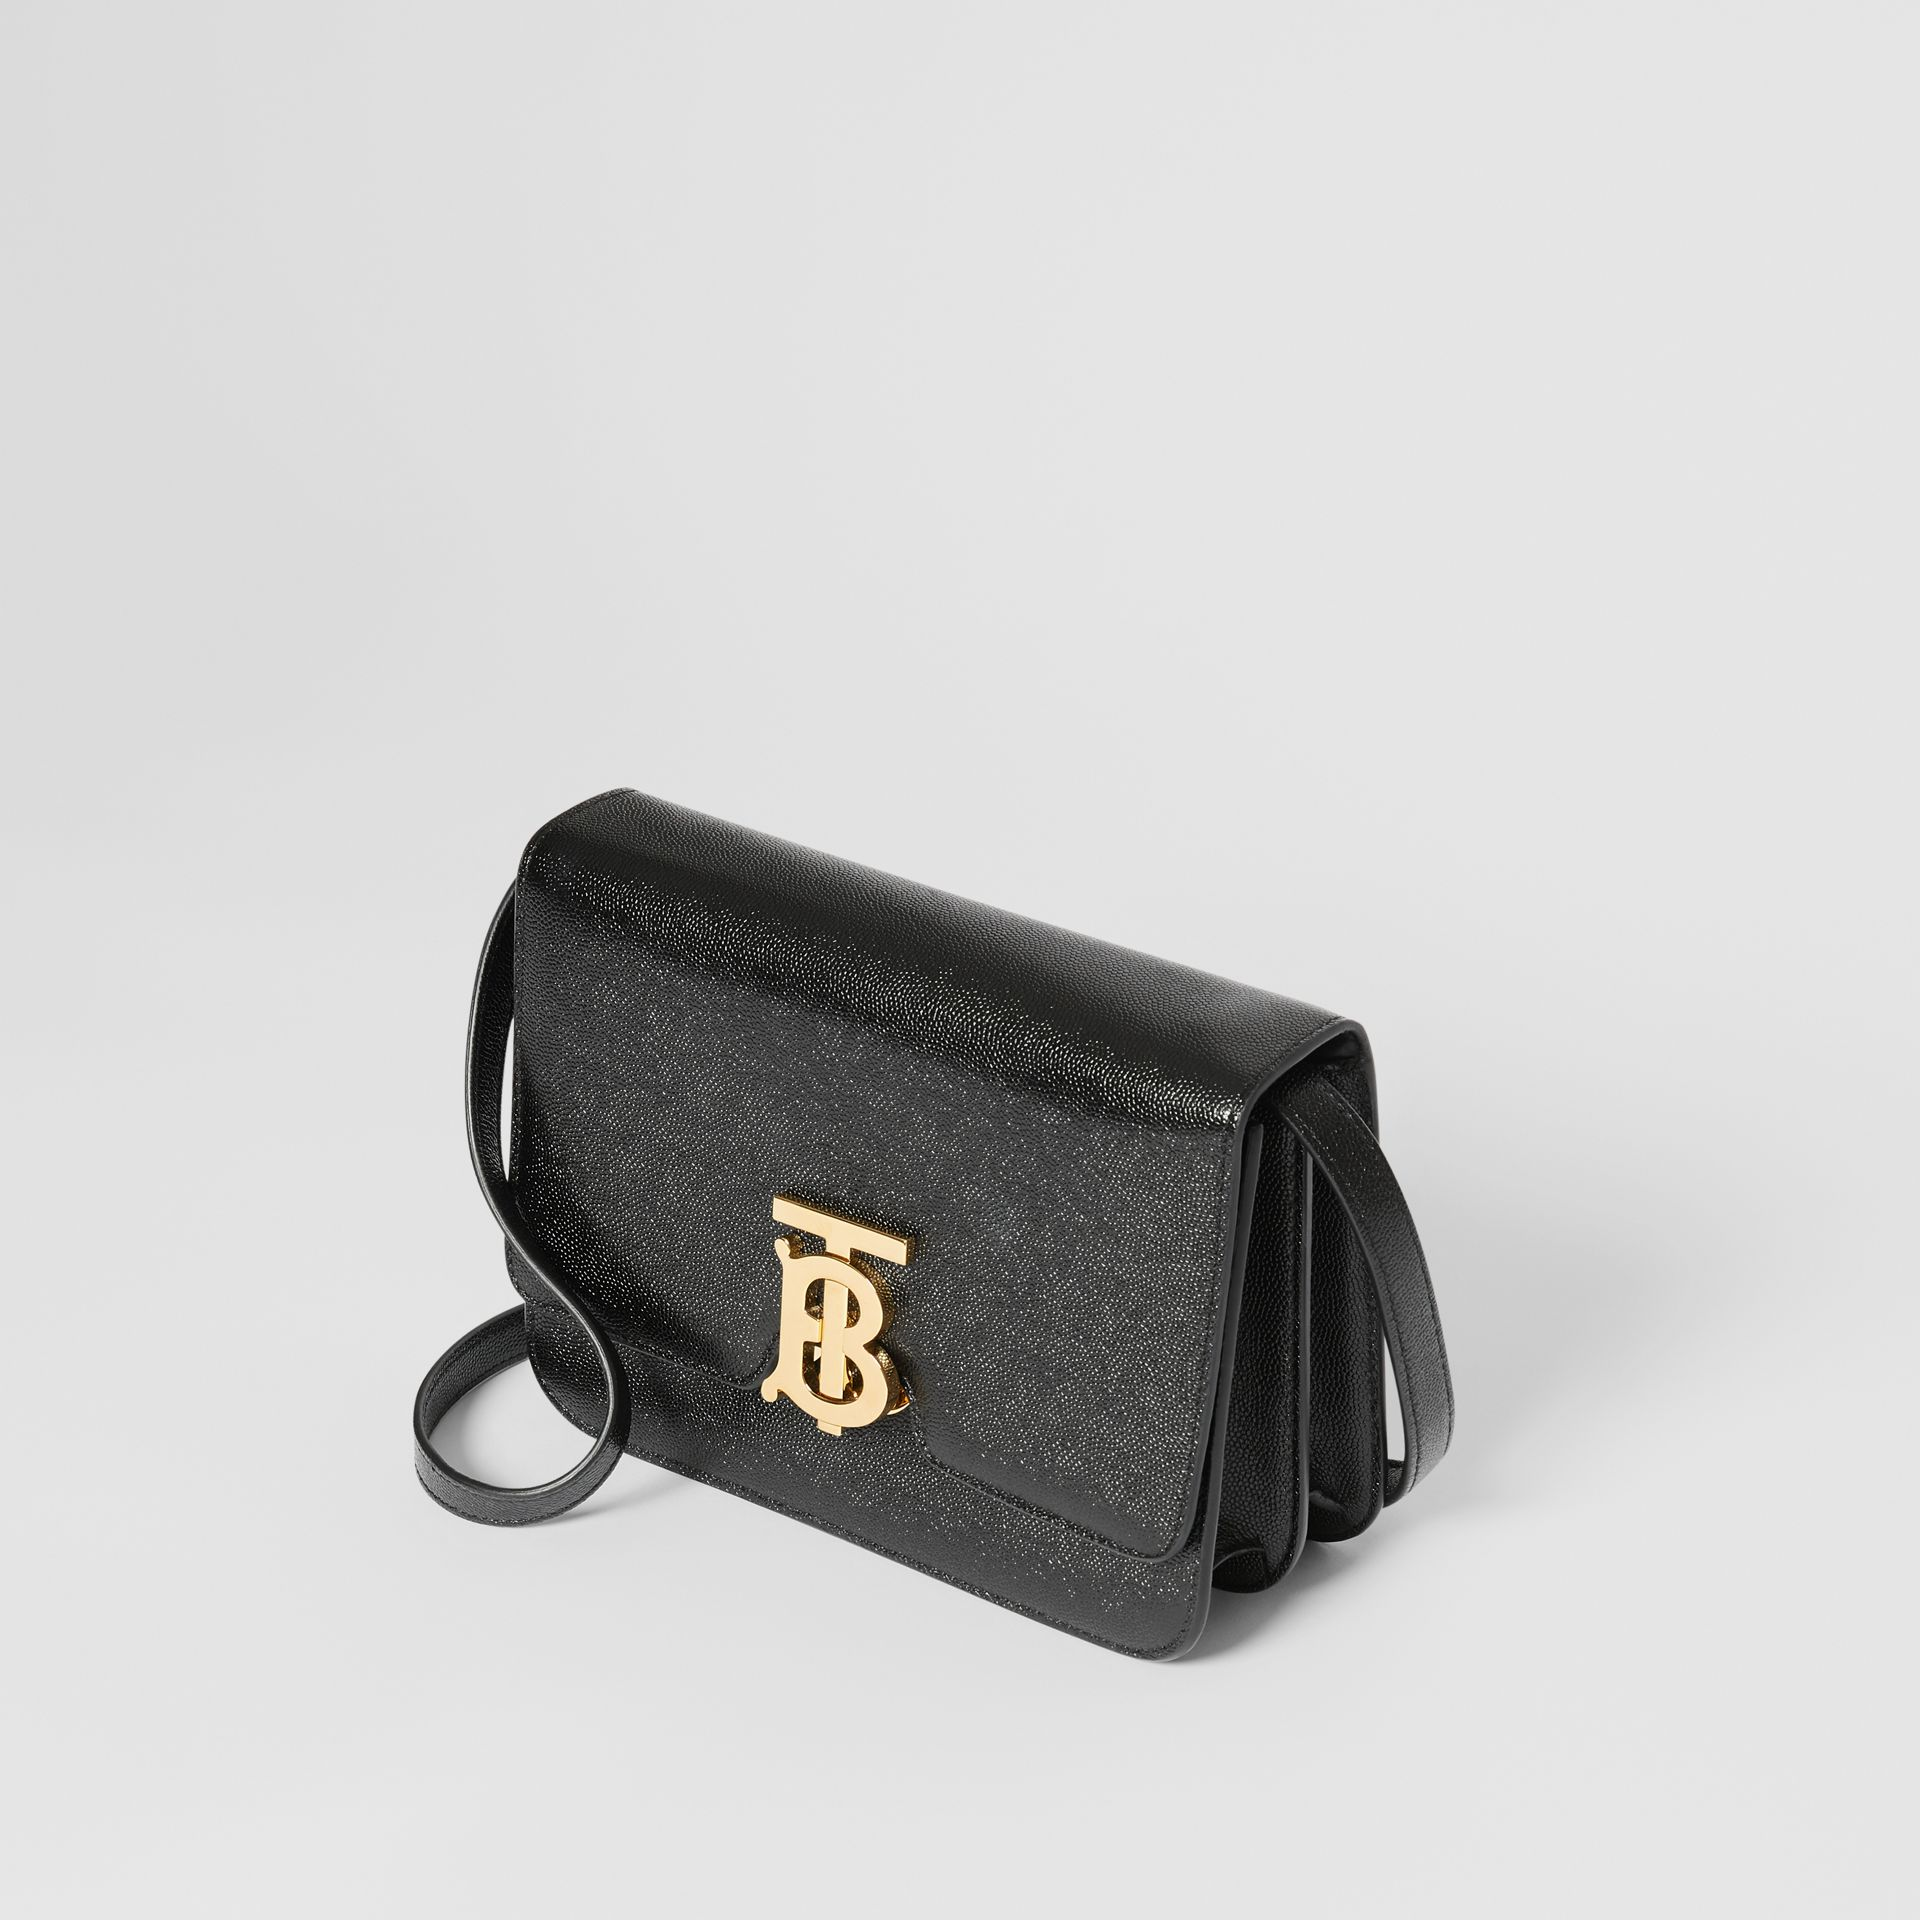 Small Grainy Leather TB Bag in Black - Women | Burberry Australia - gallery image 3